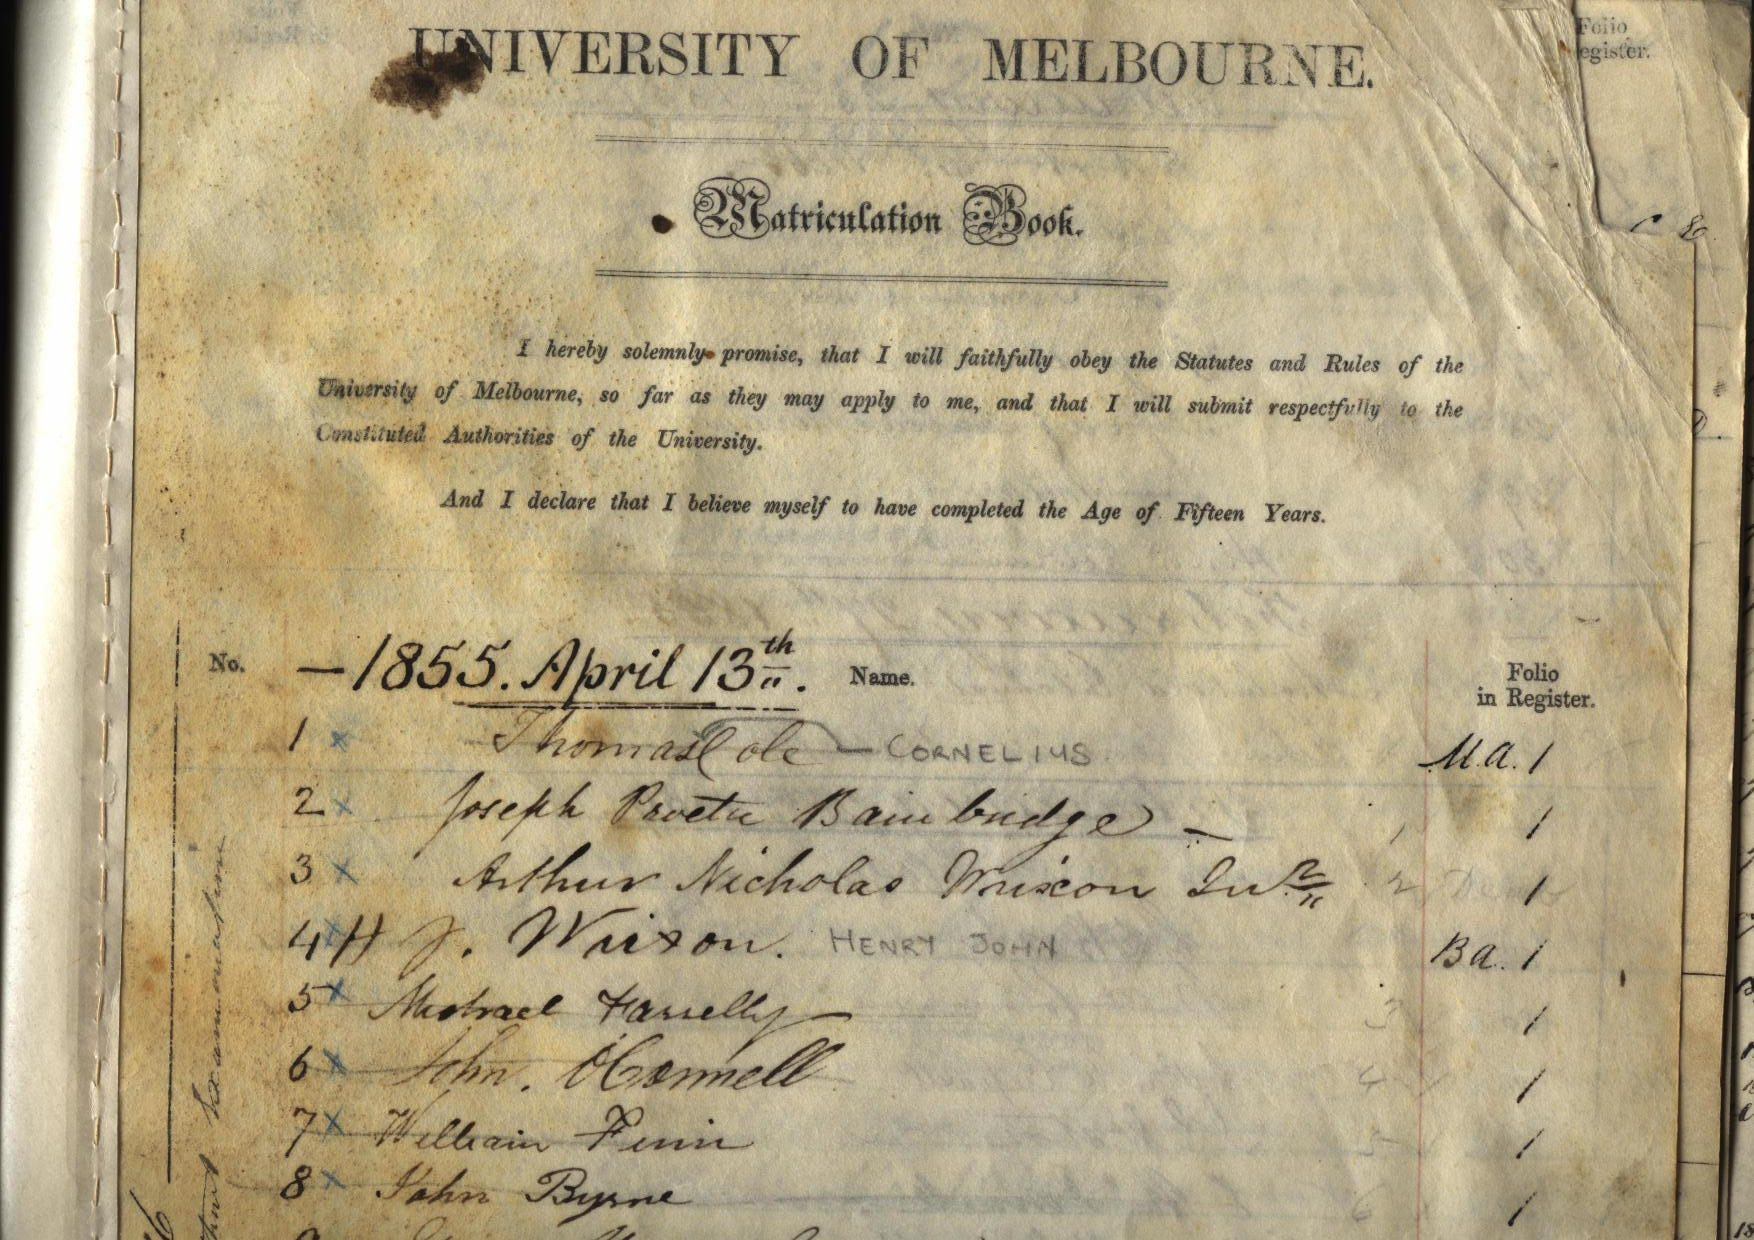 First page of Matriculation Roll